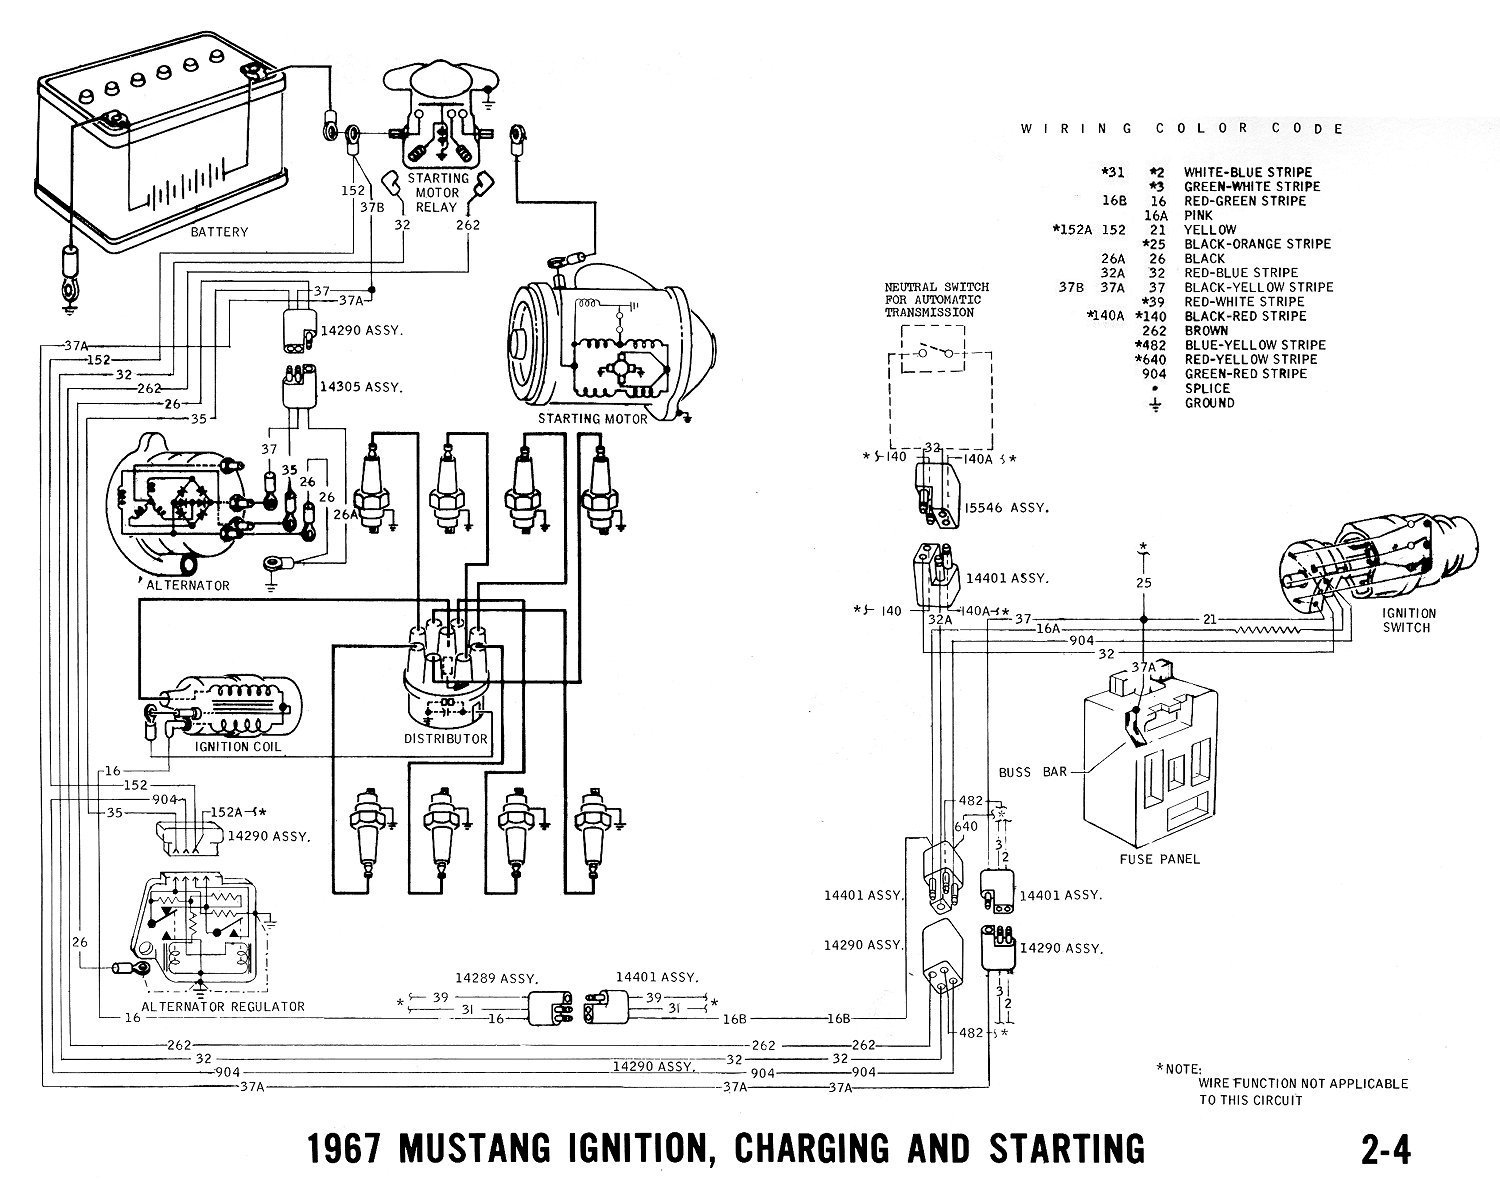 [GA_8883] 1966 Ford Mustang Parts Diagram On 1968 Mustang